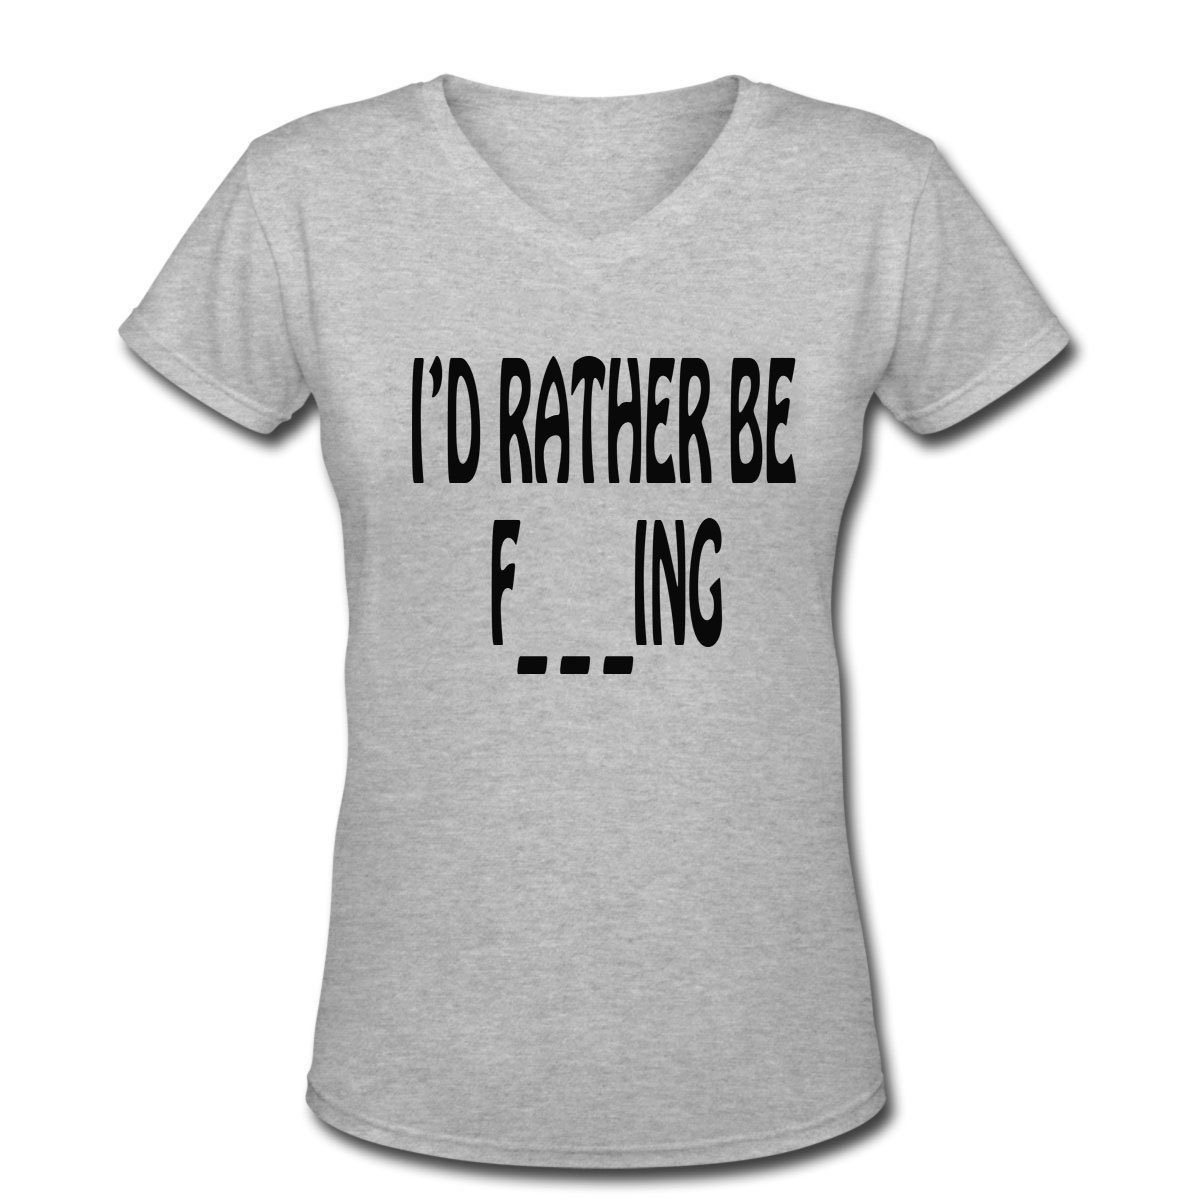 c99c24a4 Amazon.com: I'D RATHER BE F___ING Design Women's Short Sleeve Casual V-Neck  T-Shirt Grey: Clothing